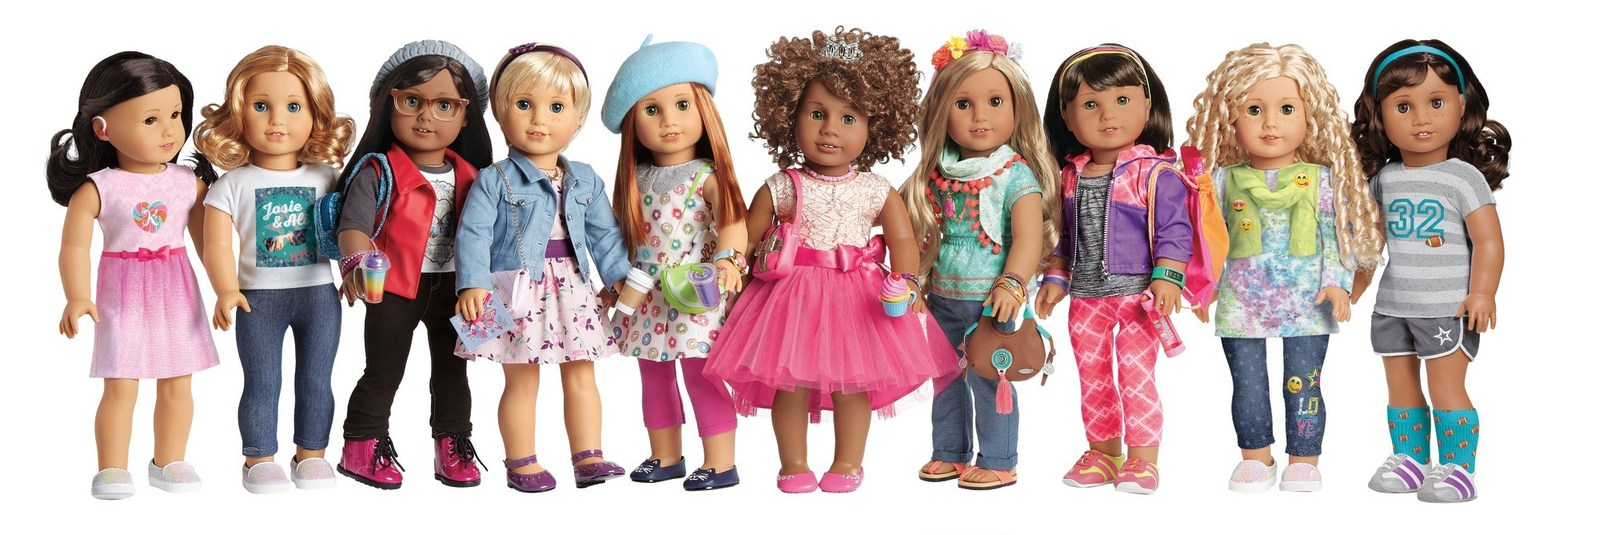 Action Figure Insider American Girl Debuts Custom Doll And Apparel Making Experience With Never Before Released Options And Over One Million Design Combinations,Simple Blouse Back Neck Designs Images Free Download